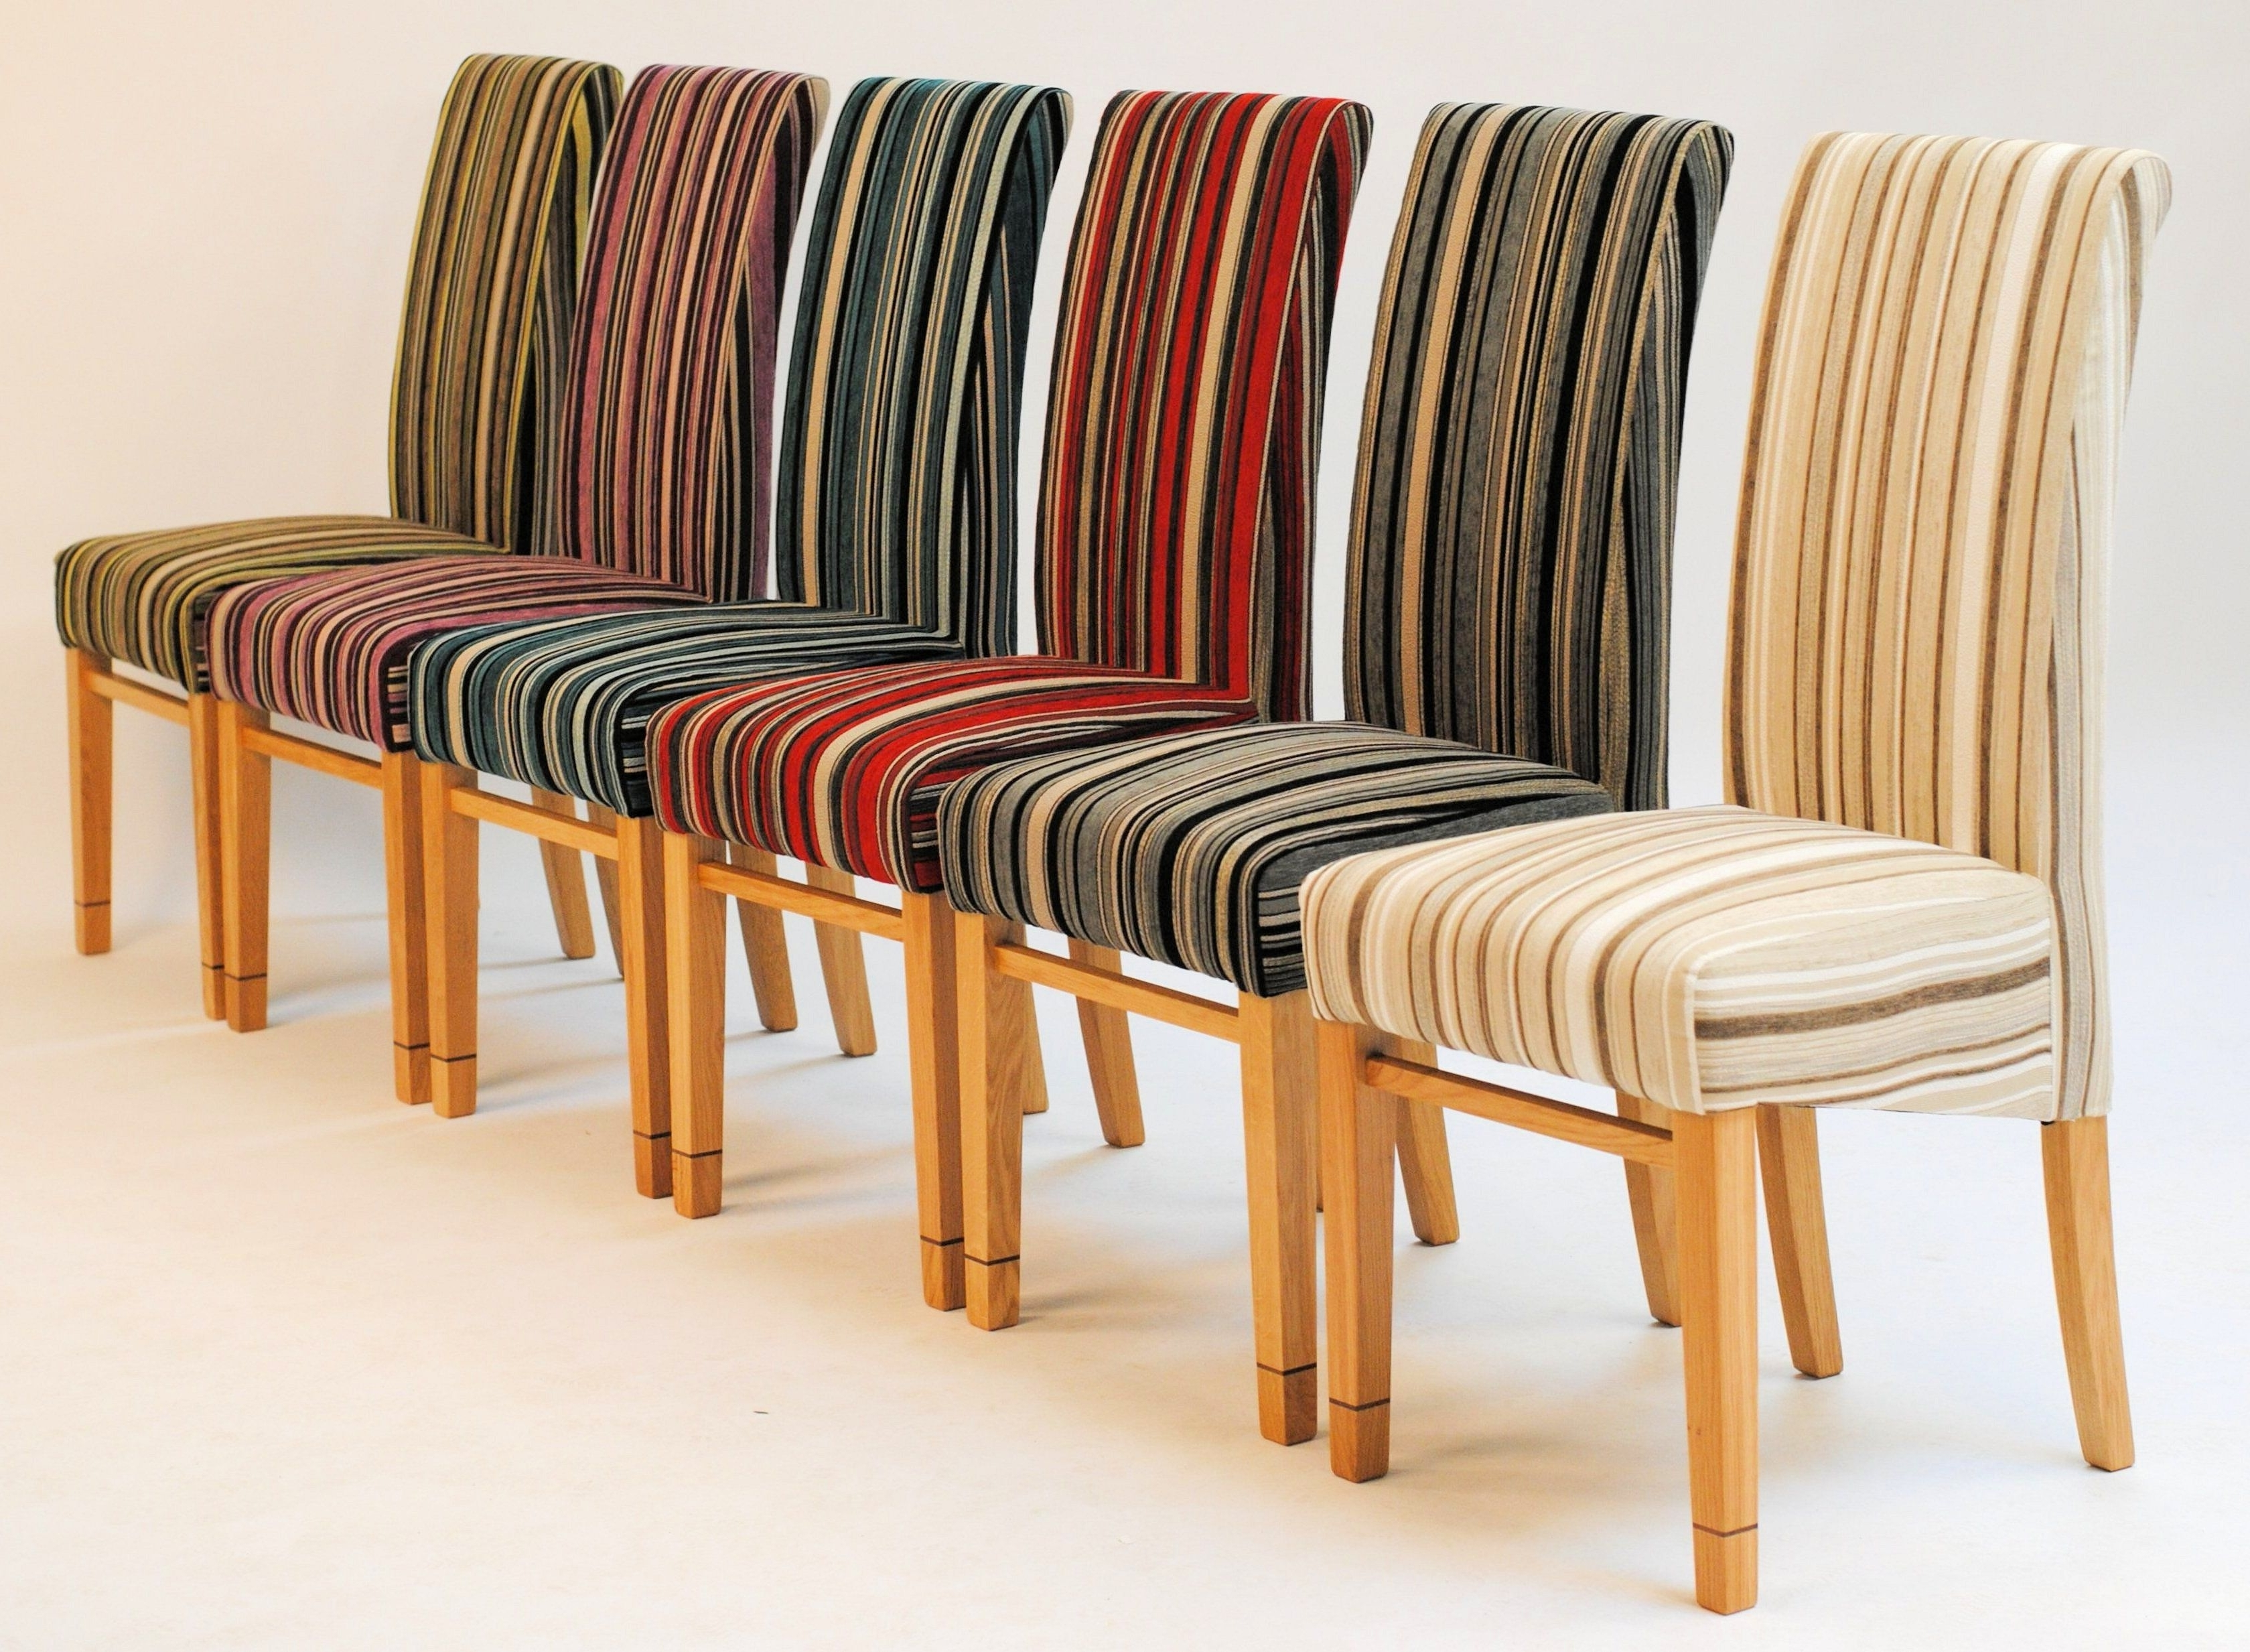 Bow518 A Pair Of Dining Chairs Intended For Well Known Fabric Dining Chairs (Gallery 21 of 25)